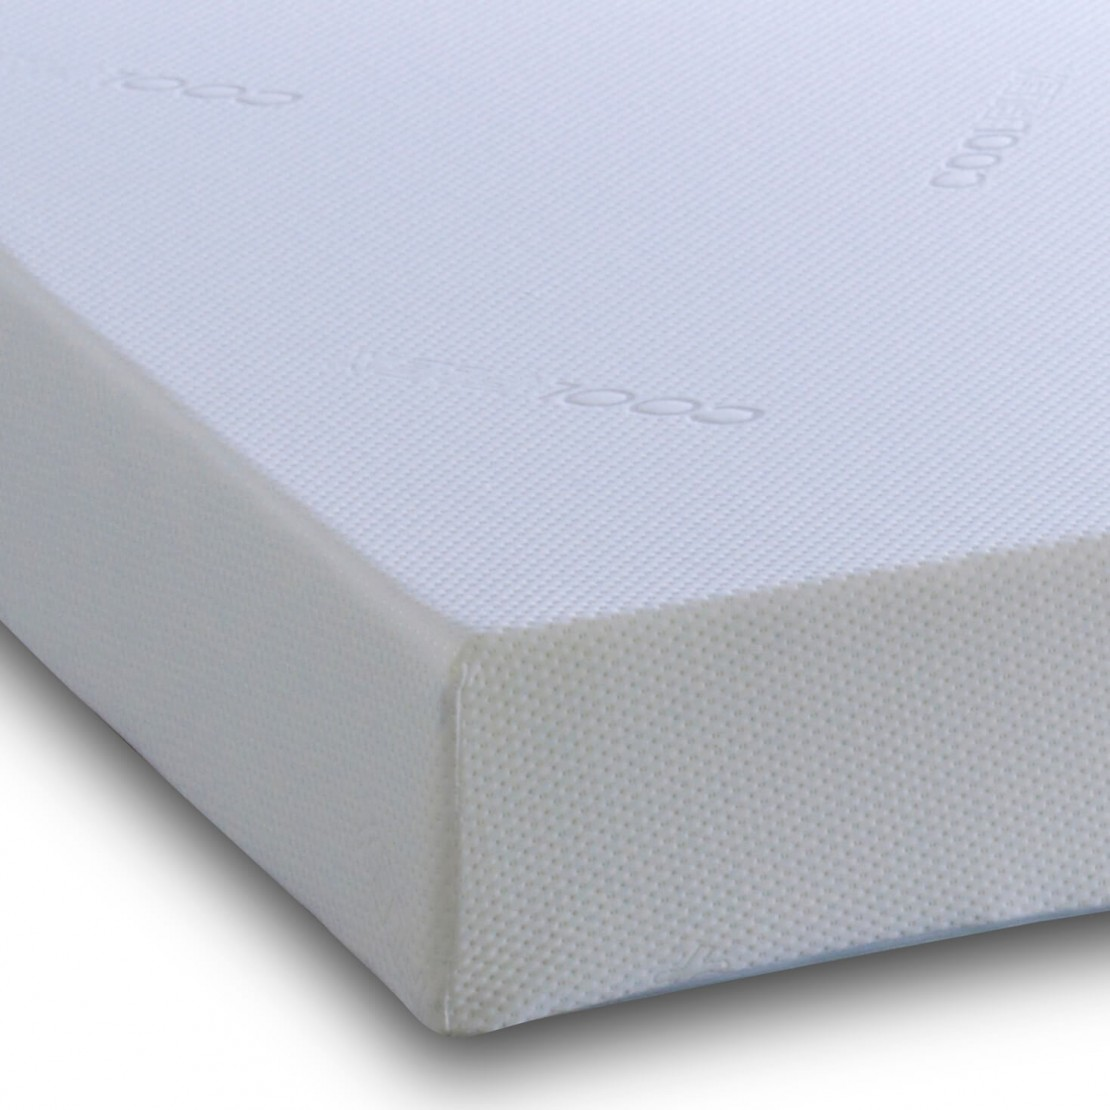 /_images/product-photos/visco-therapy-memory-foam-6000-firm-mattress-a.jpg